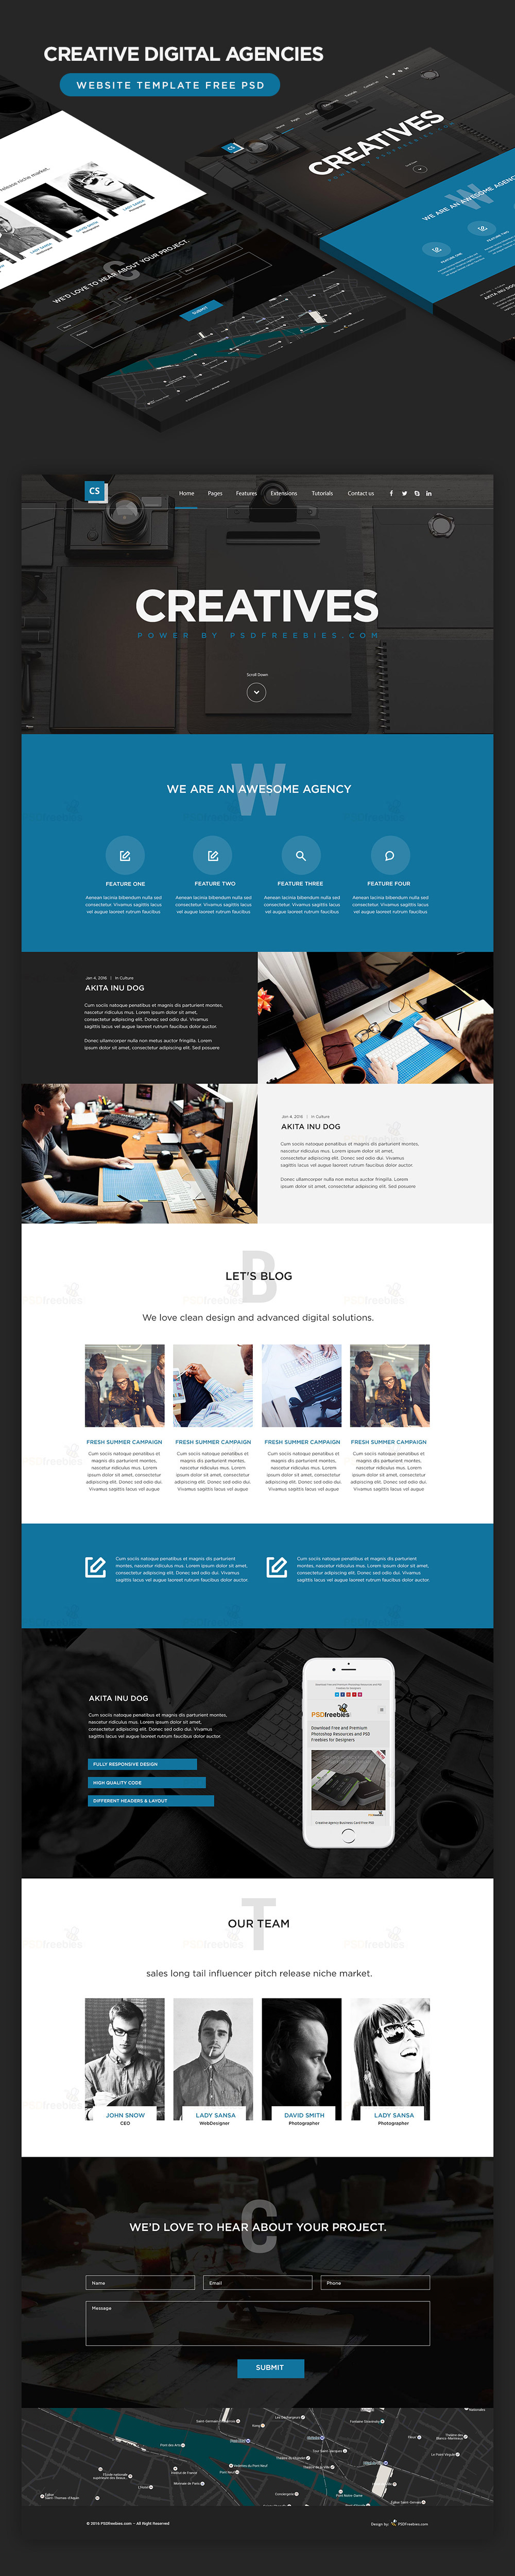 High quality 50 free corporate and business web templates psd creative digital agencies website template free psd download wajeb Gallery